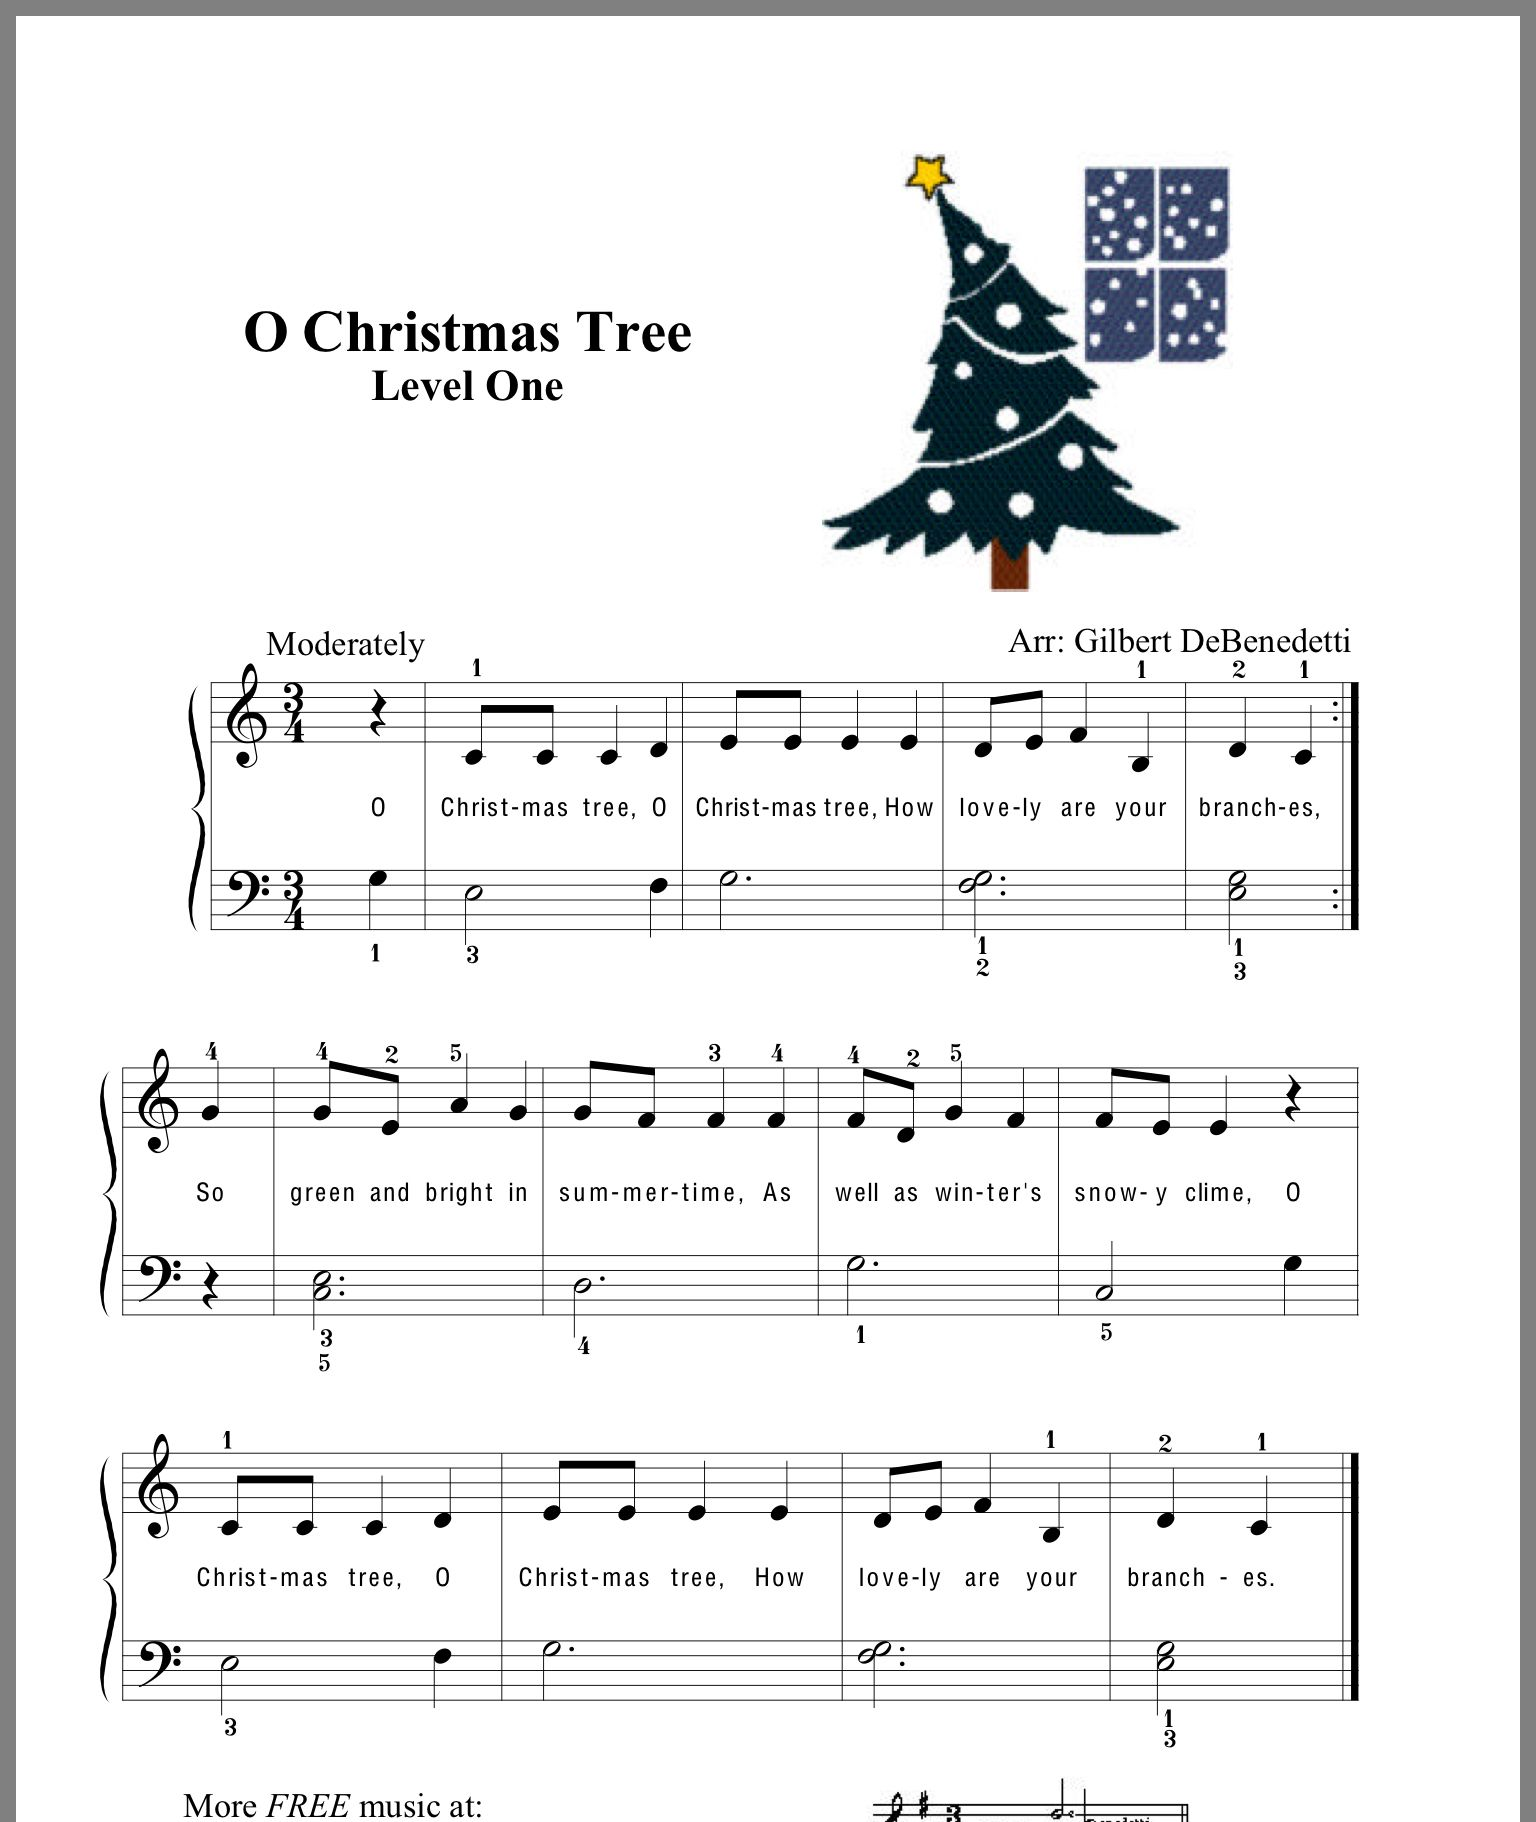 O Christmas Tree Popular Piano Sheet Music Piano Sheet Music Piano Music